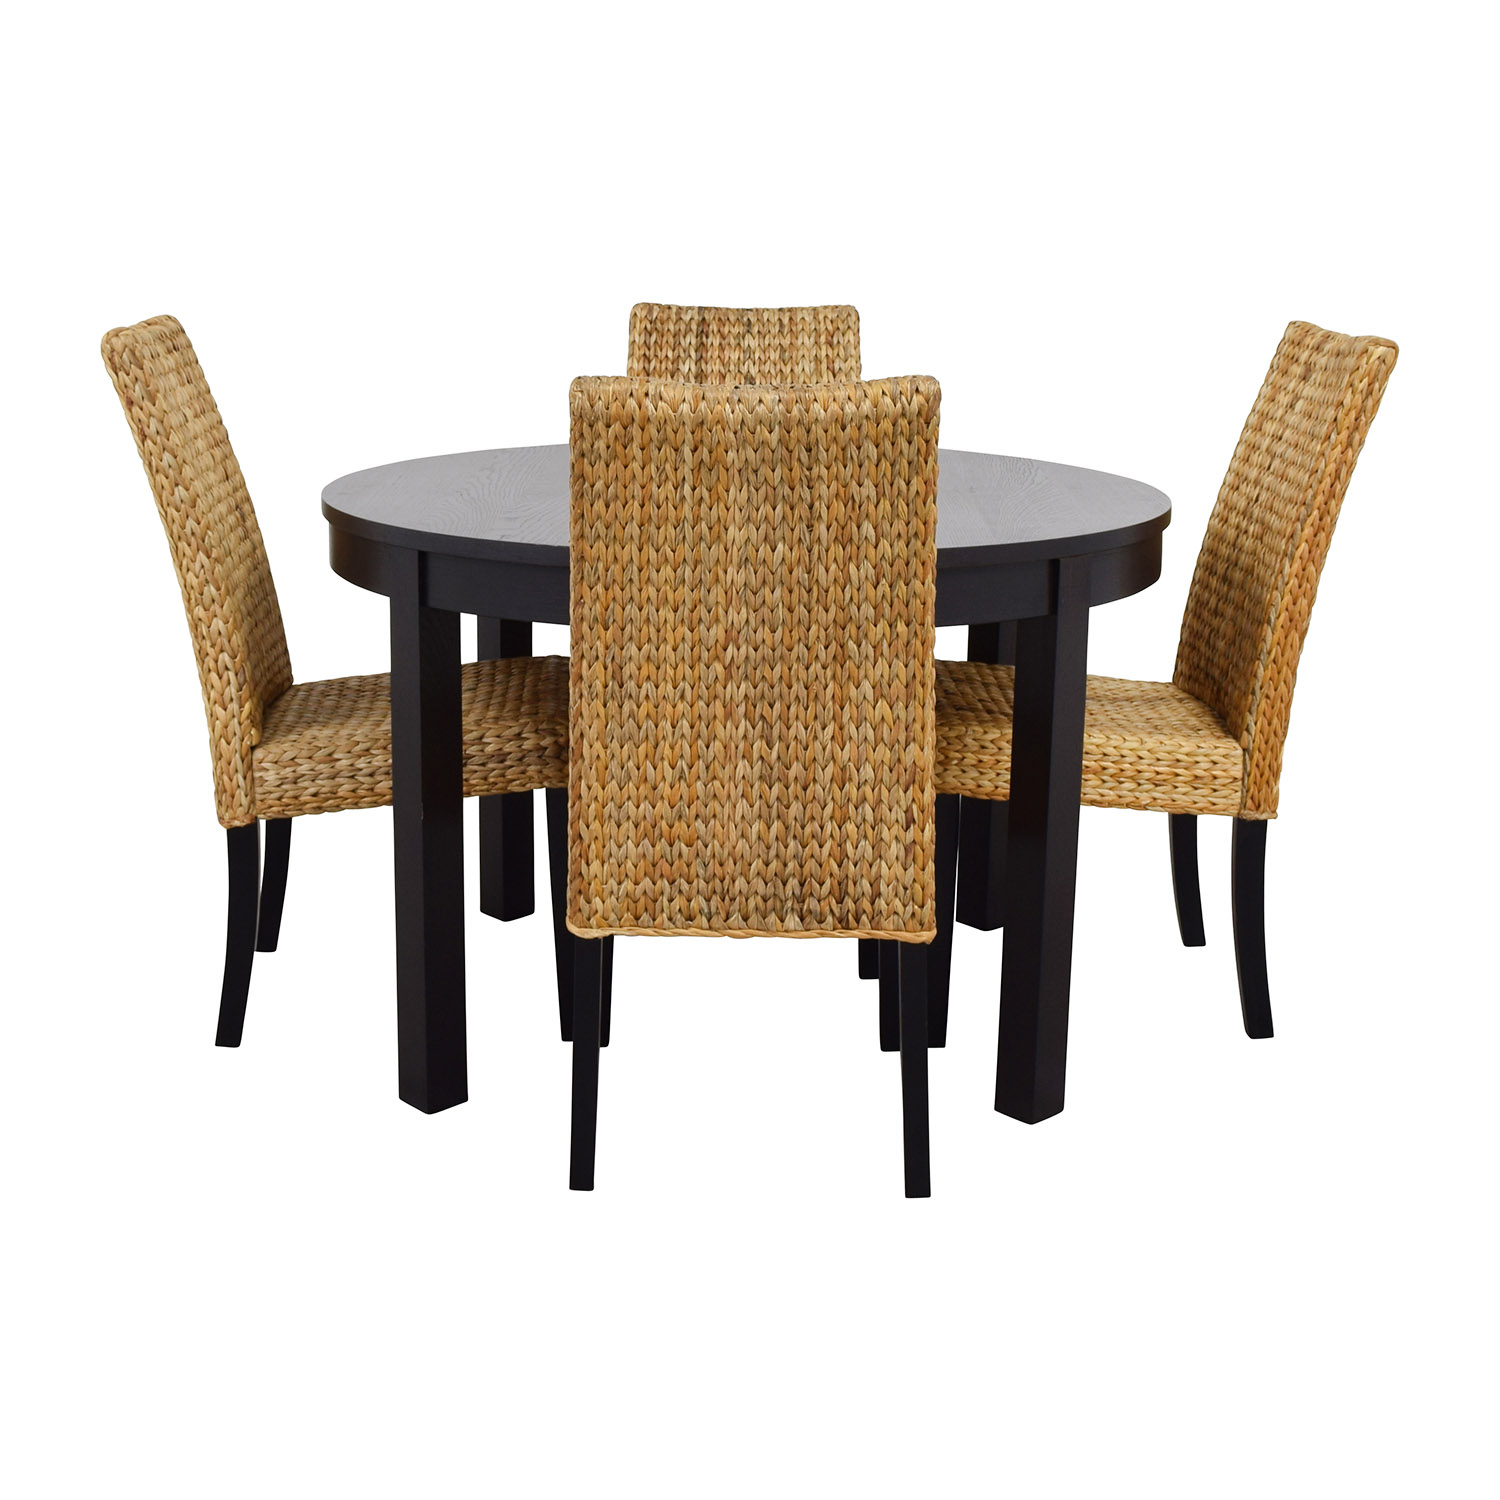 66 off macy 39 s ikea round black dining table set with for Dining table set